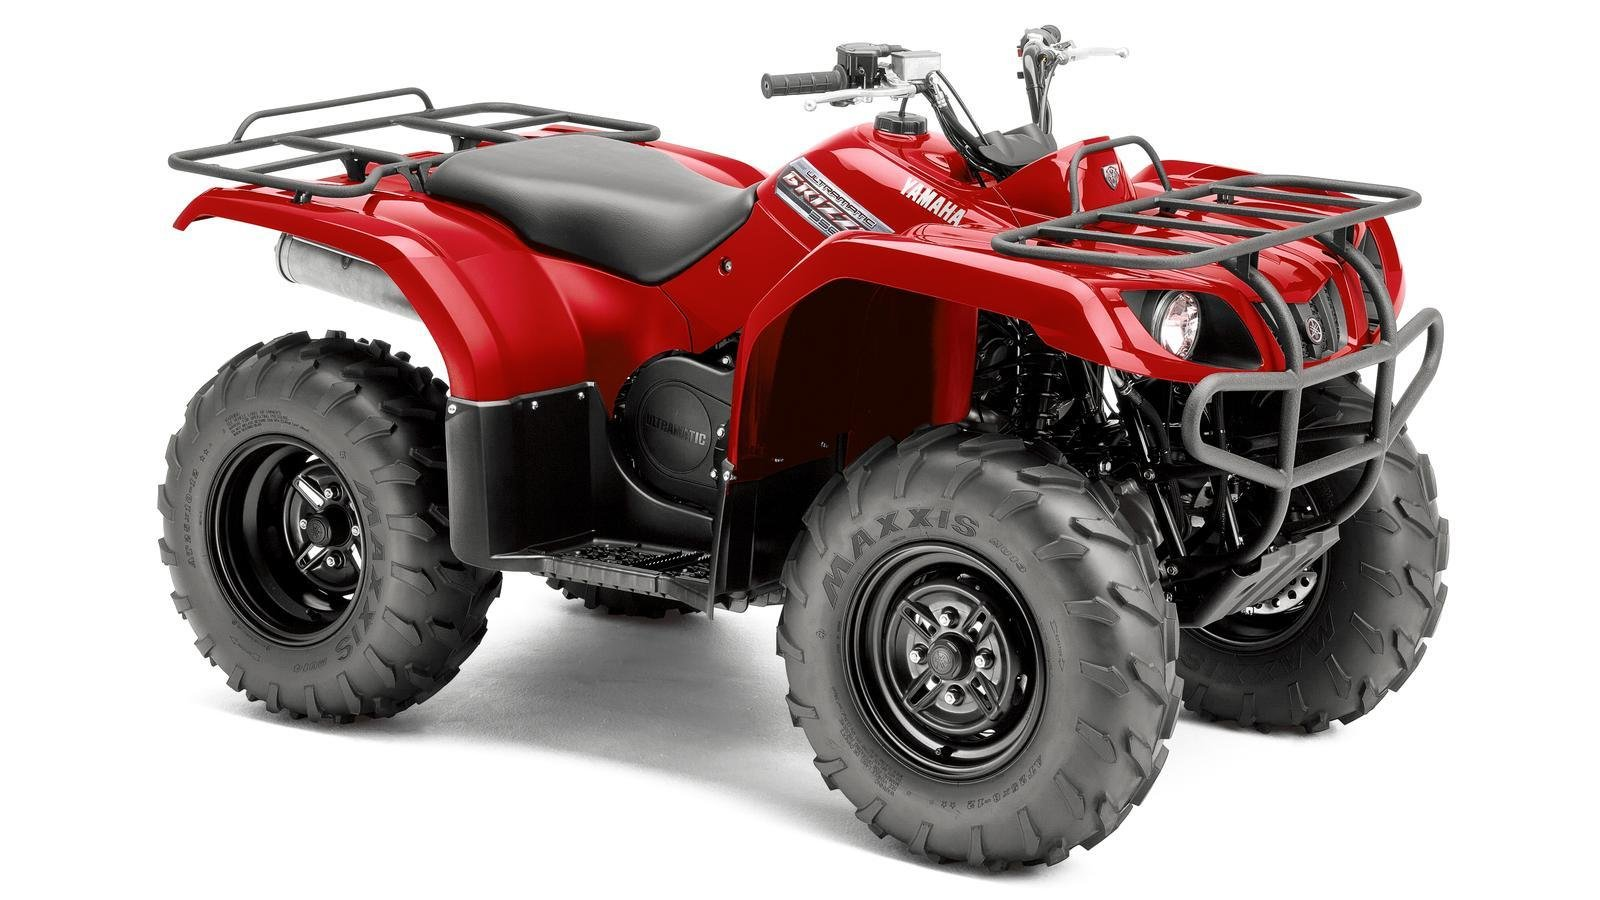 2013 yamaha grizzly 350 4wd review top speed. Black Bedroom Furniture Sets. Home Design Ideas